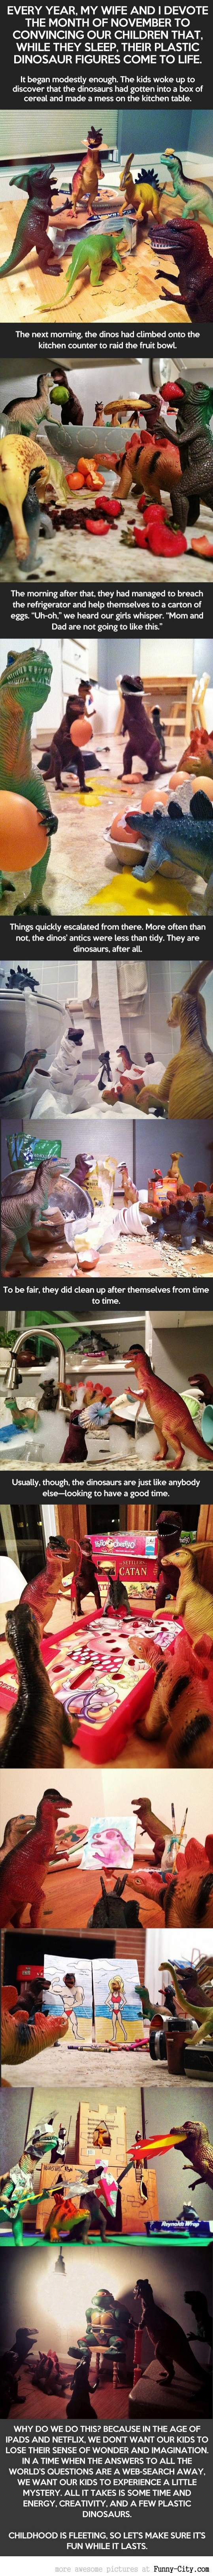 While their kids are sleeping, these parents create for them a wonderful dinosaur mystery